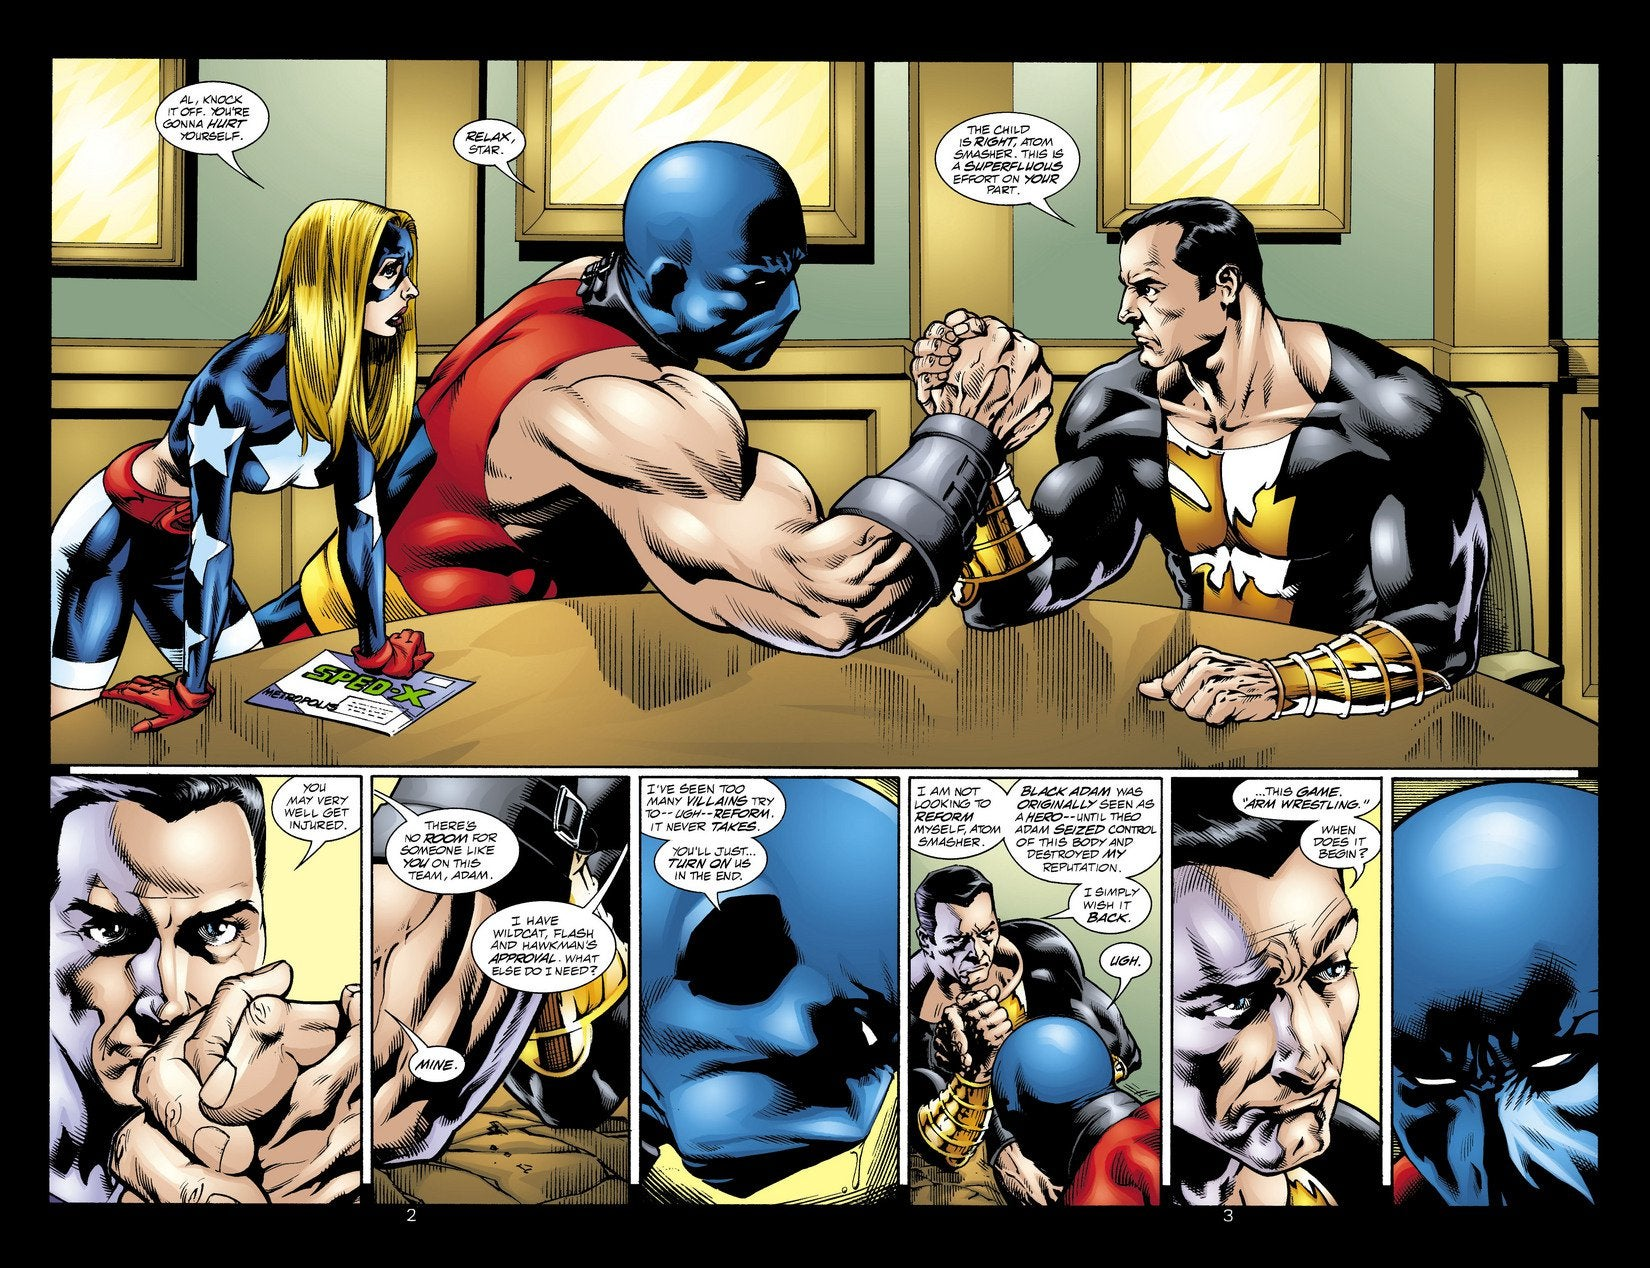 Black Adam and Atom Smasher